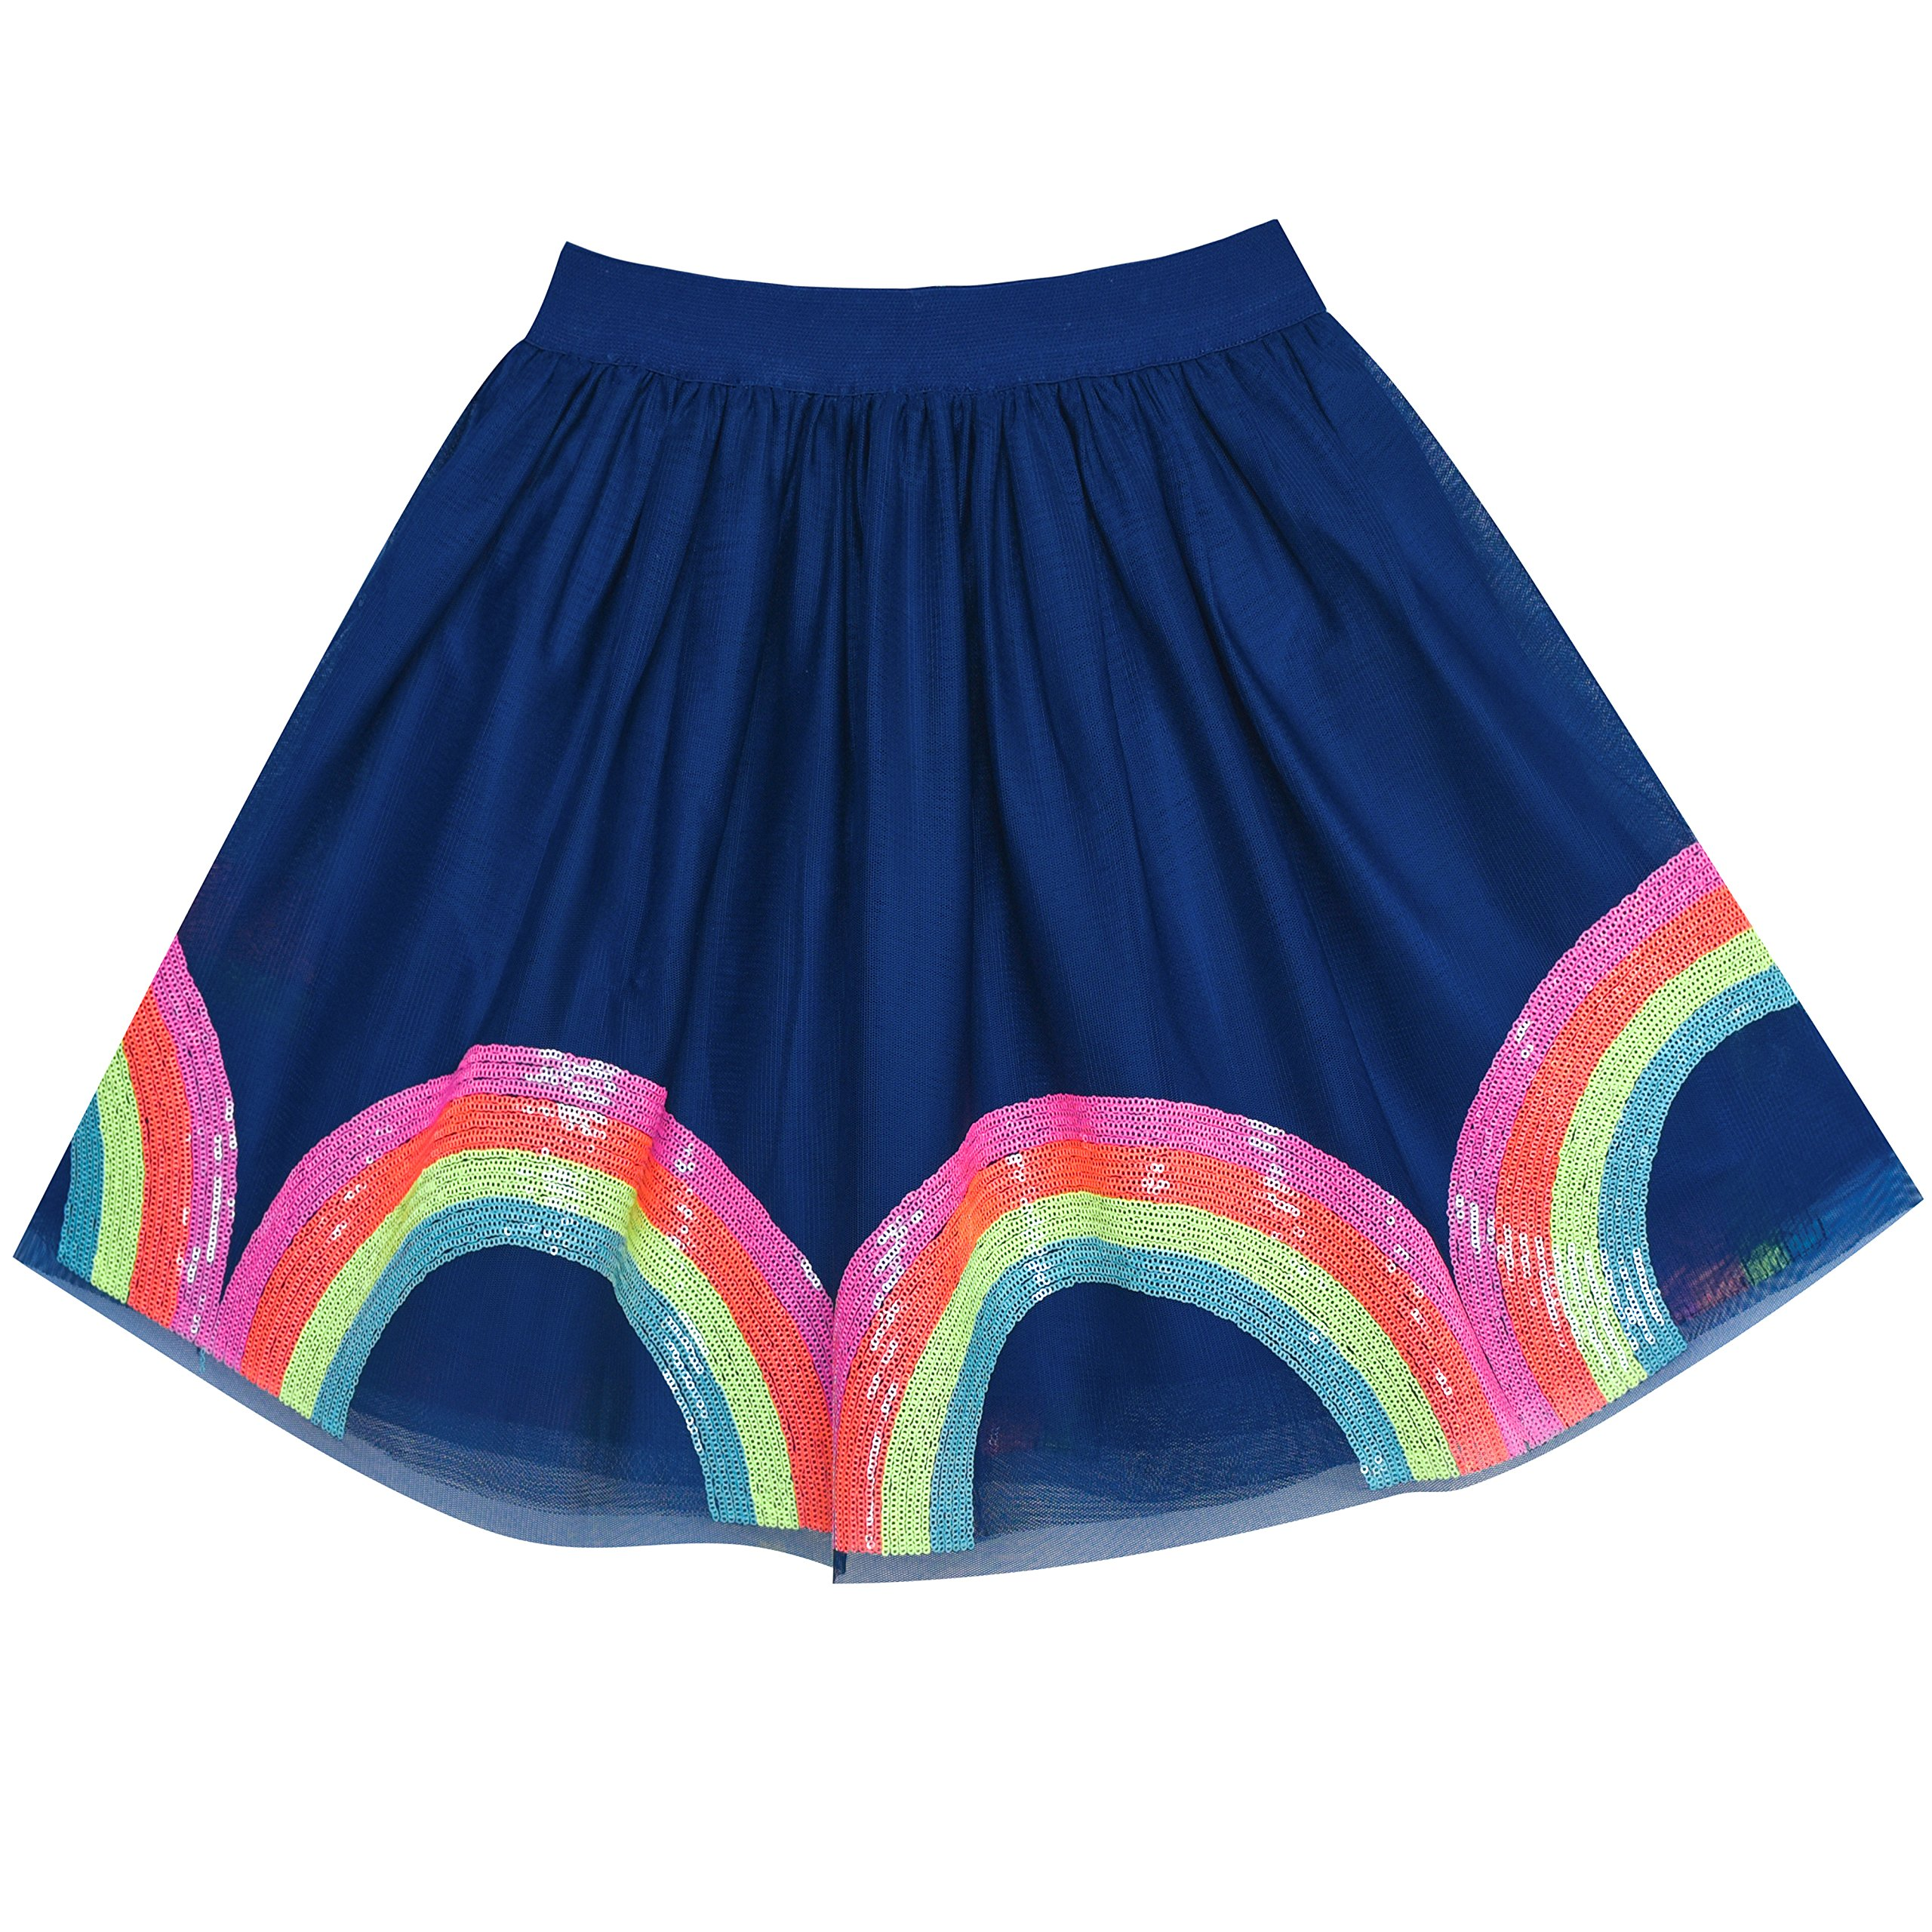 Girls Skirt Colorful Rainbow Sequins Sparkling Tutu Dancing Size 6